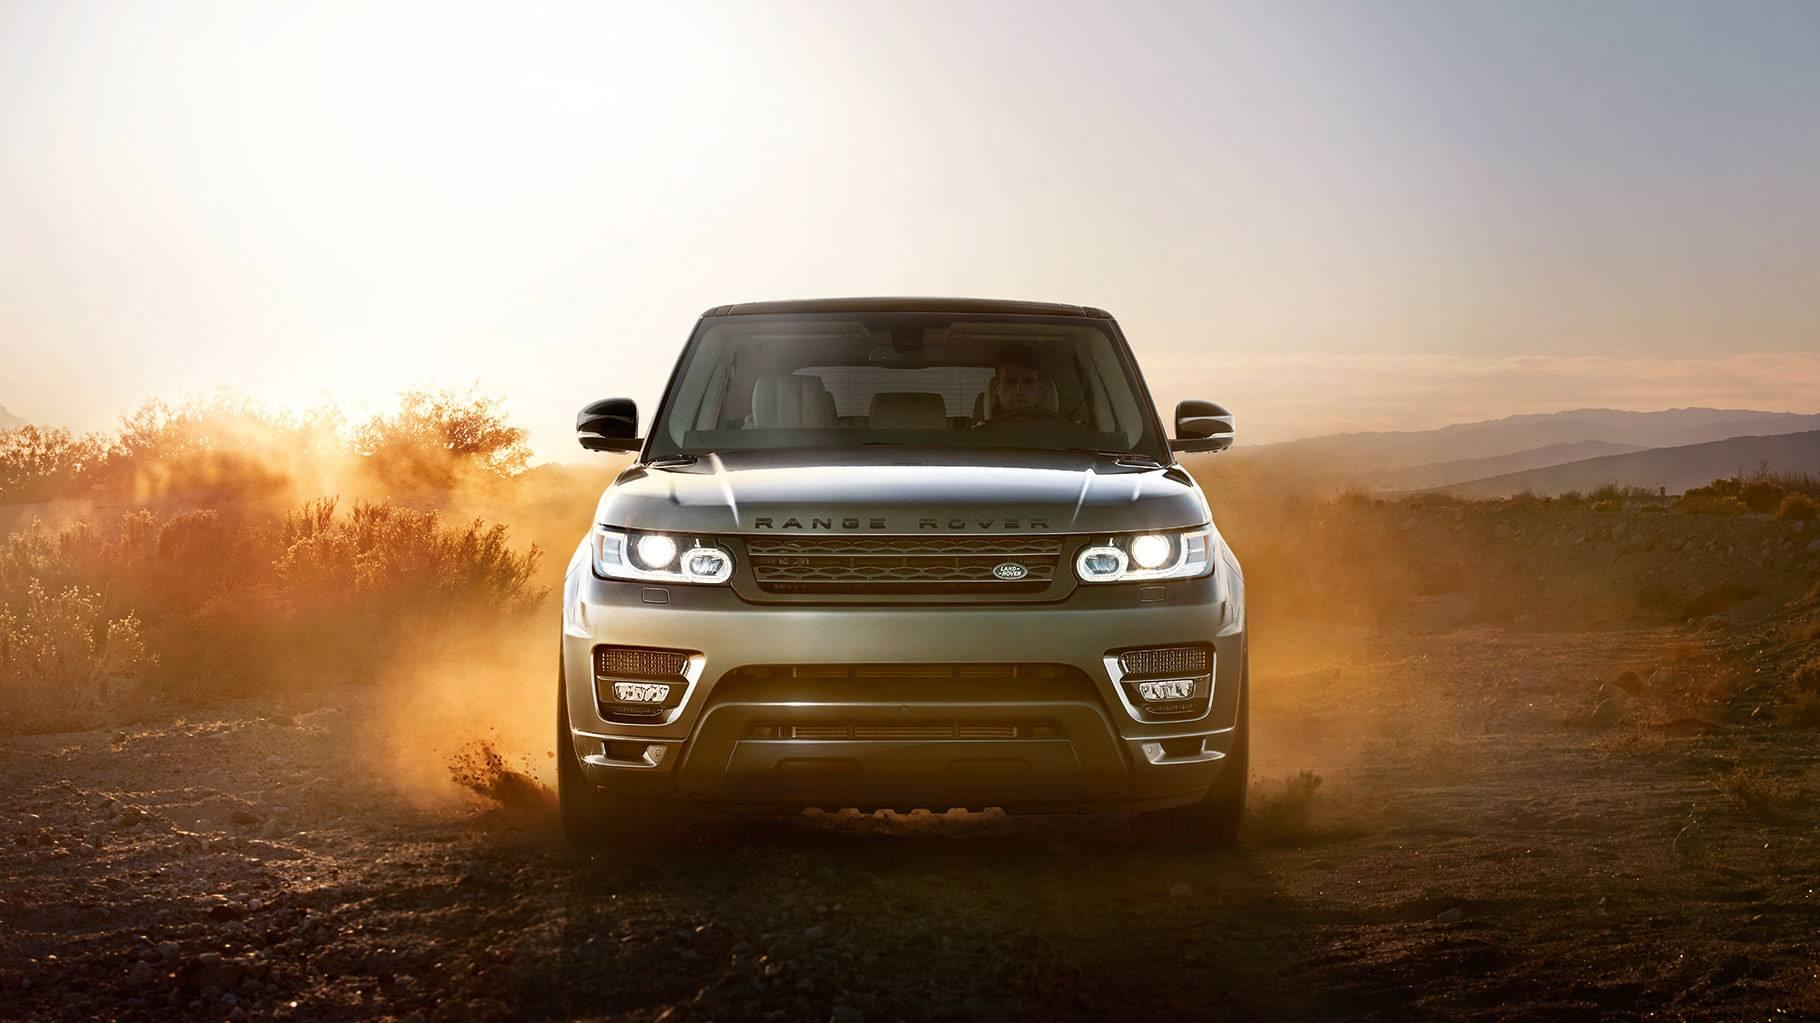 2017 Land Rover Range Rover Sport front view